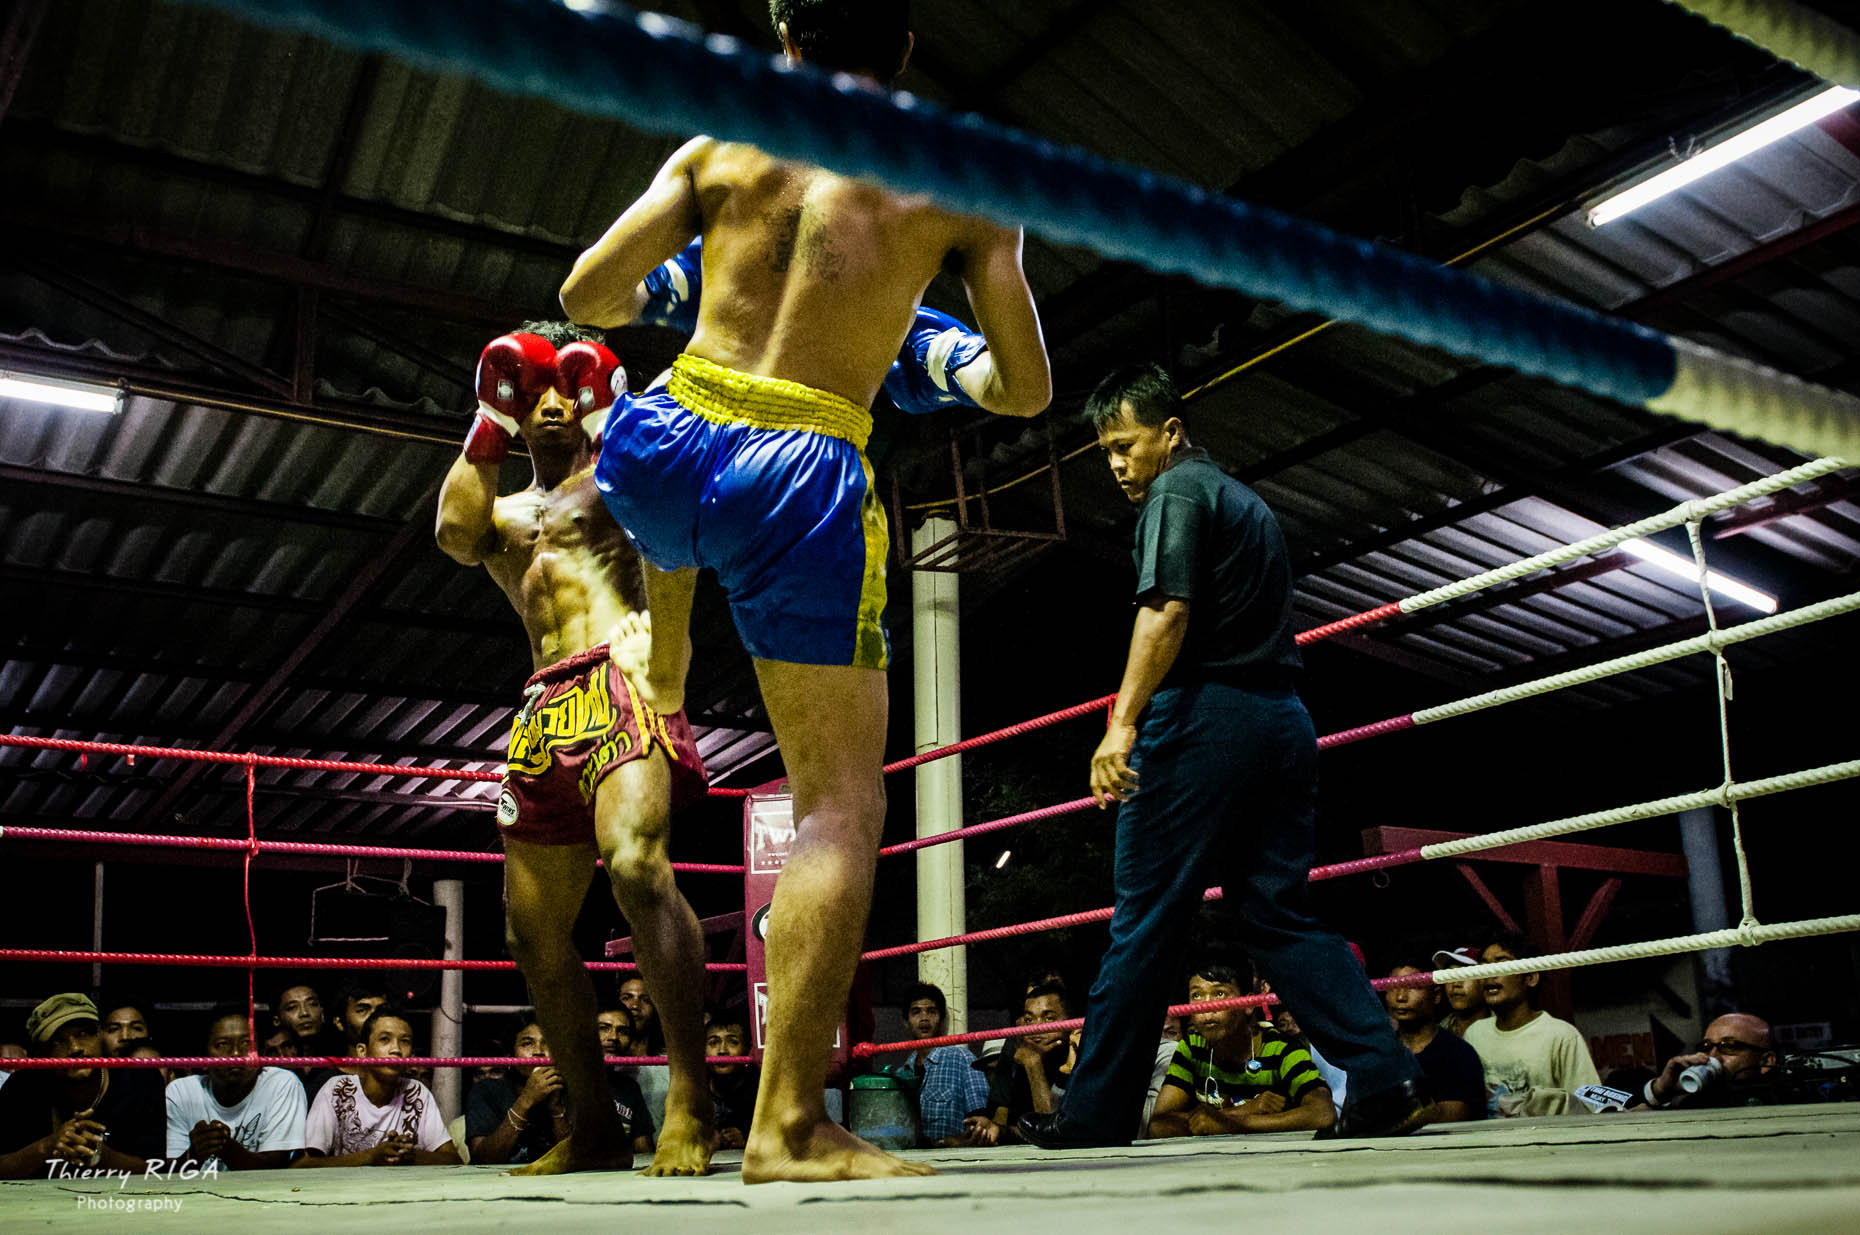 Muay_Thai_boxing_Thailand_fight_5584_Thierry_Riga-2.jpg